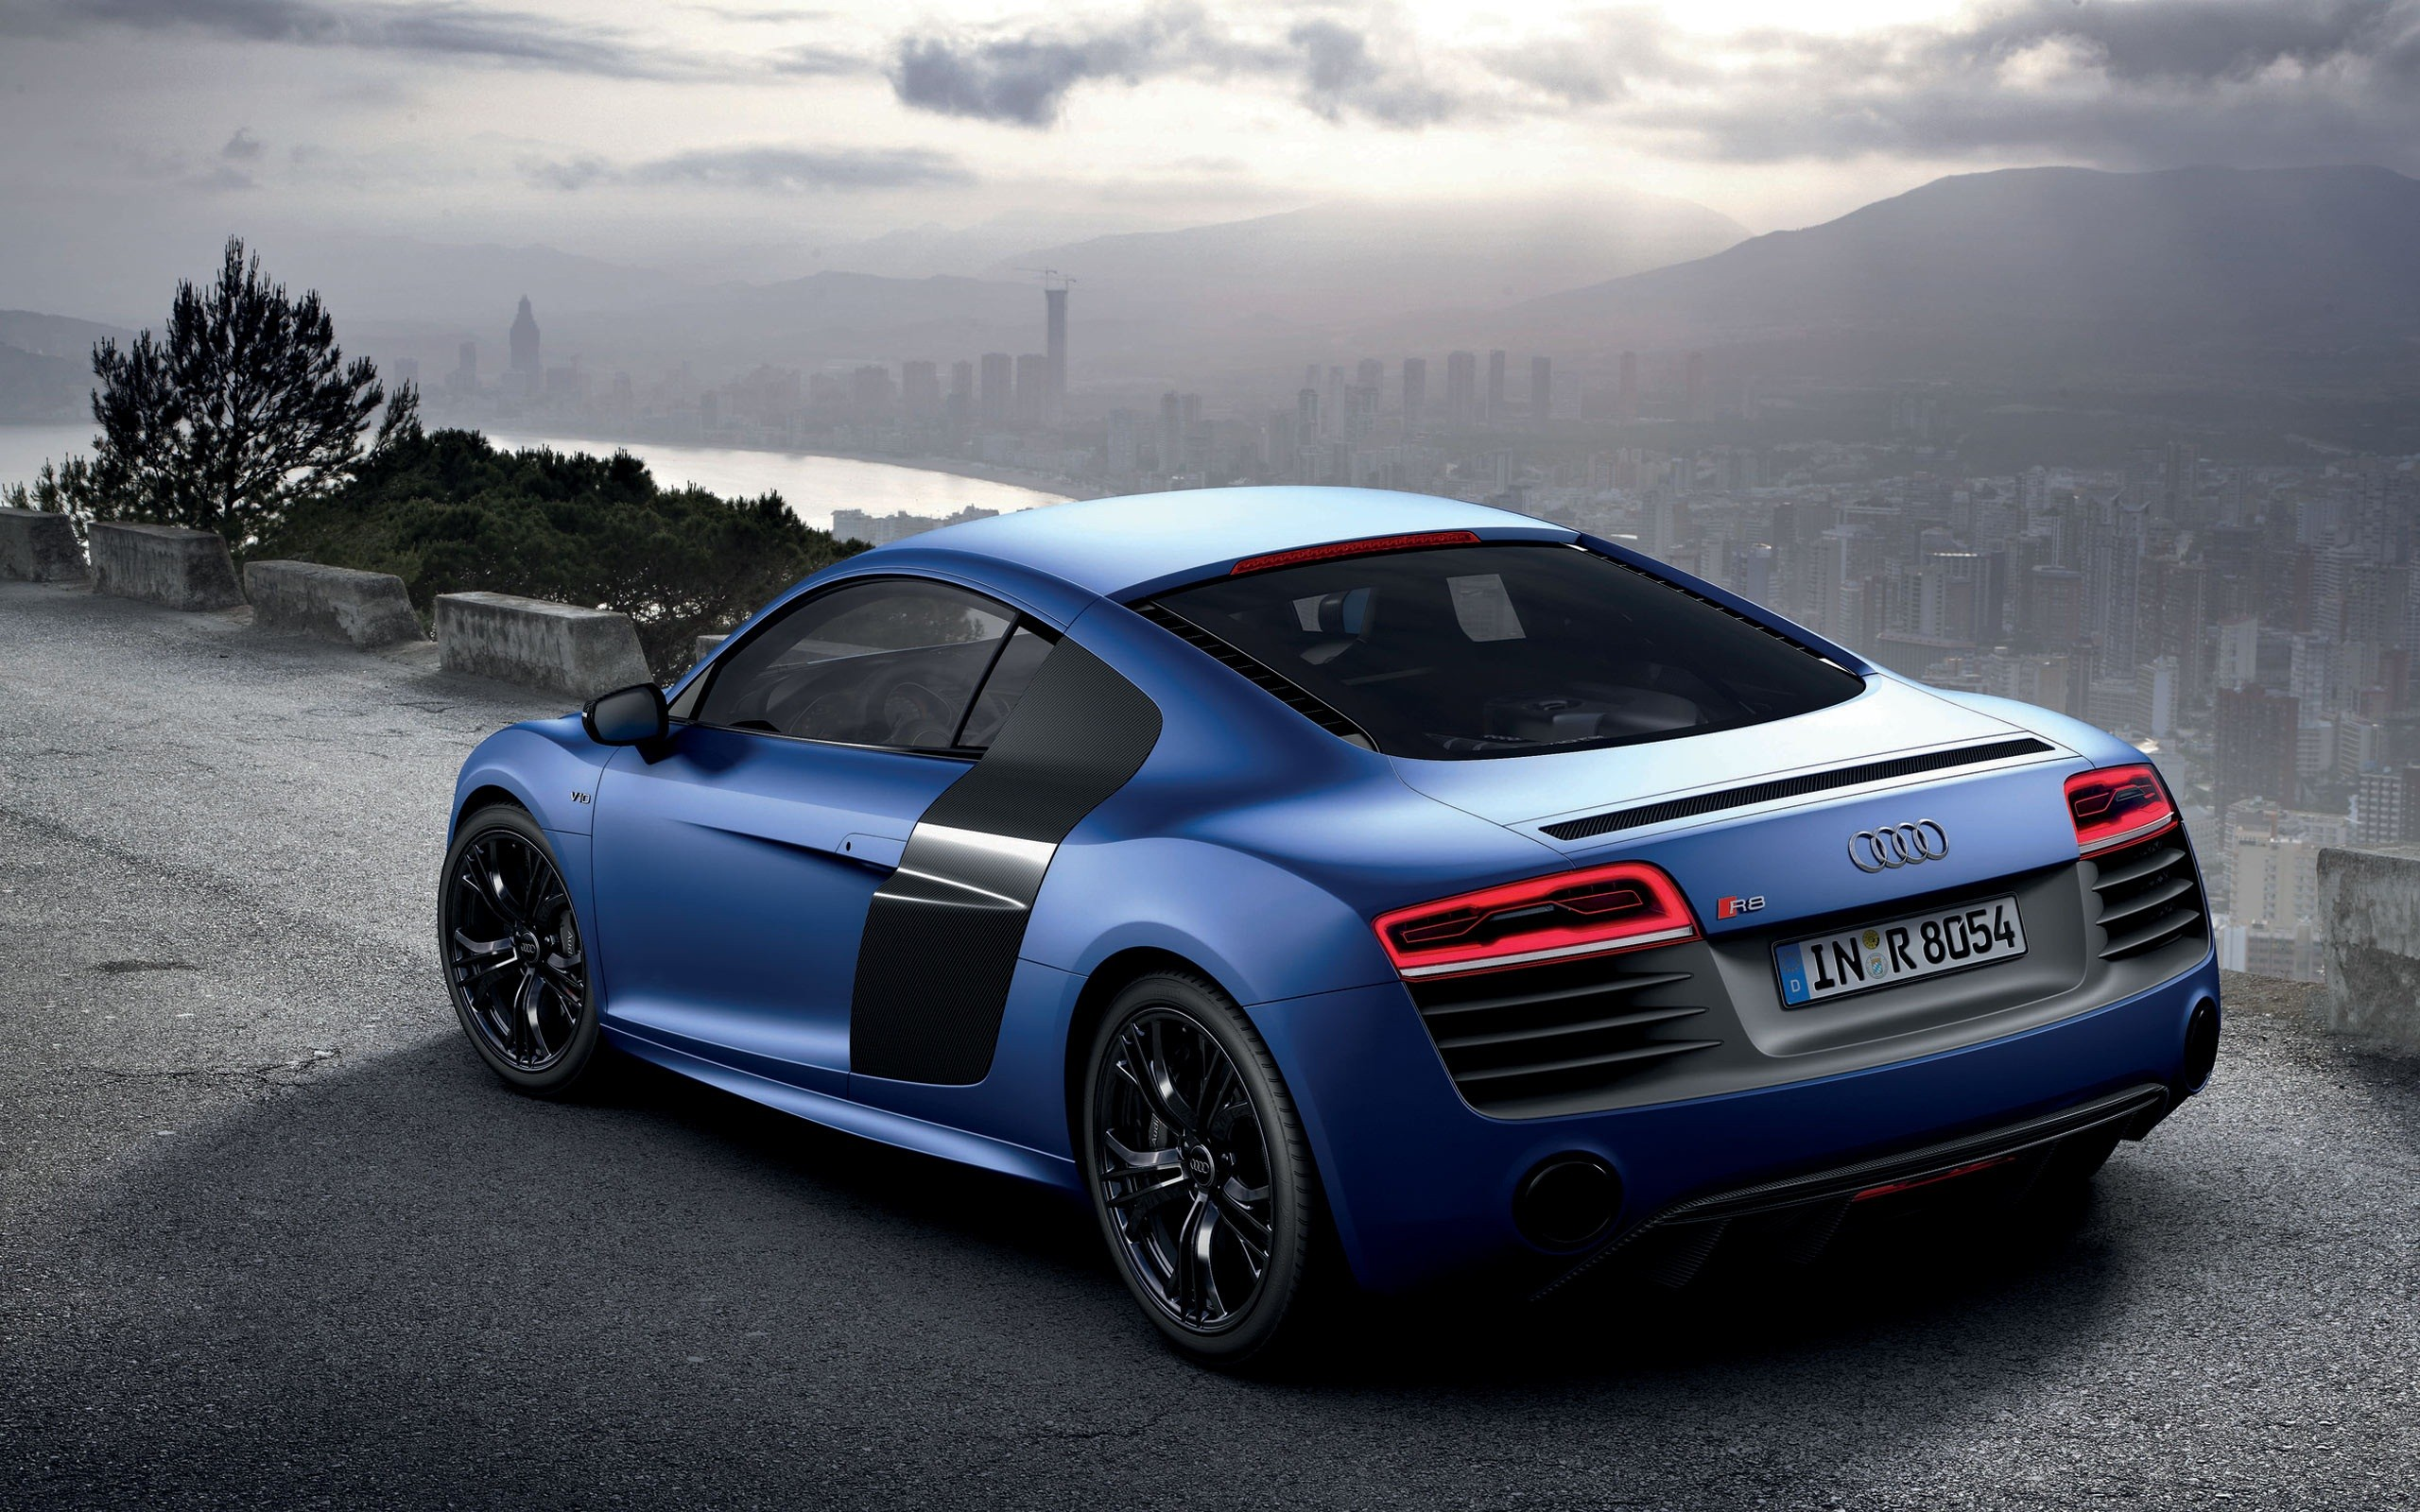 Daily Wallpaper Audi R8 V10 I Like To Waste My Time